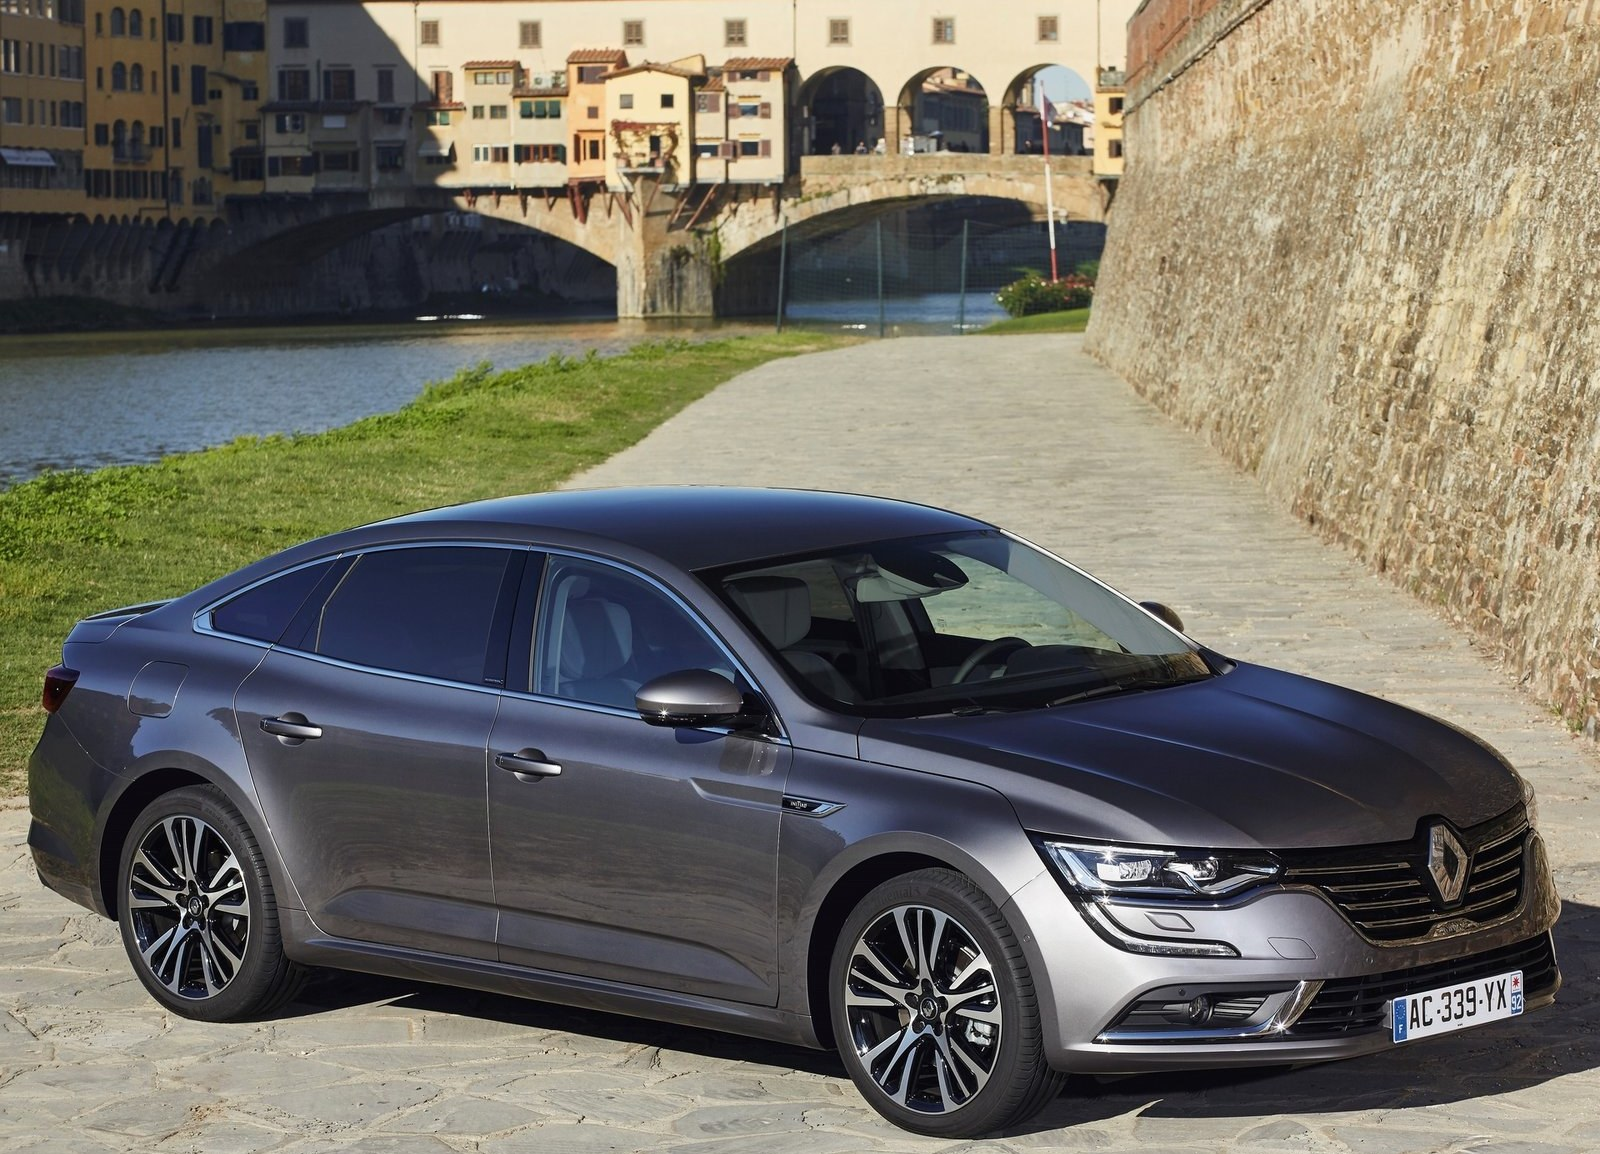 2016 Renault Talisman Side Design (View 4 of 14)